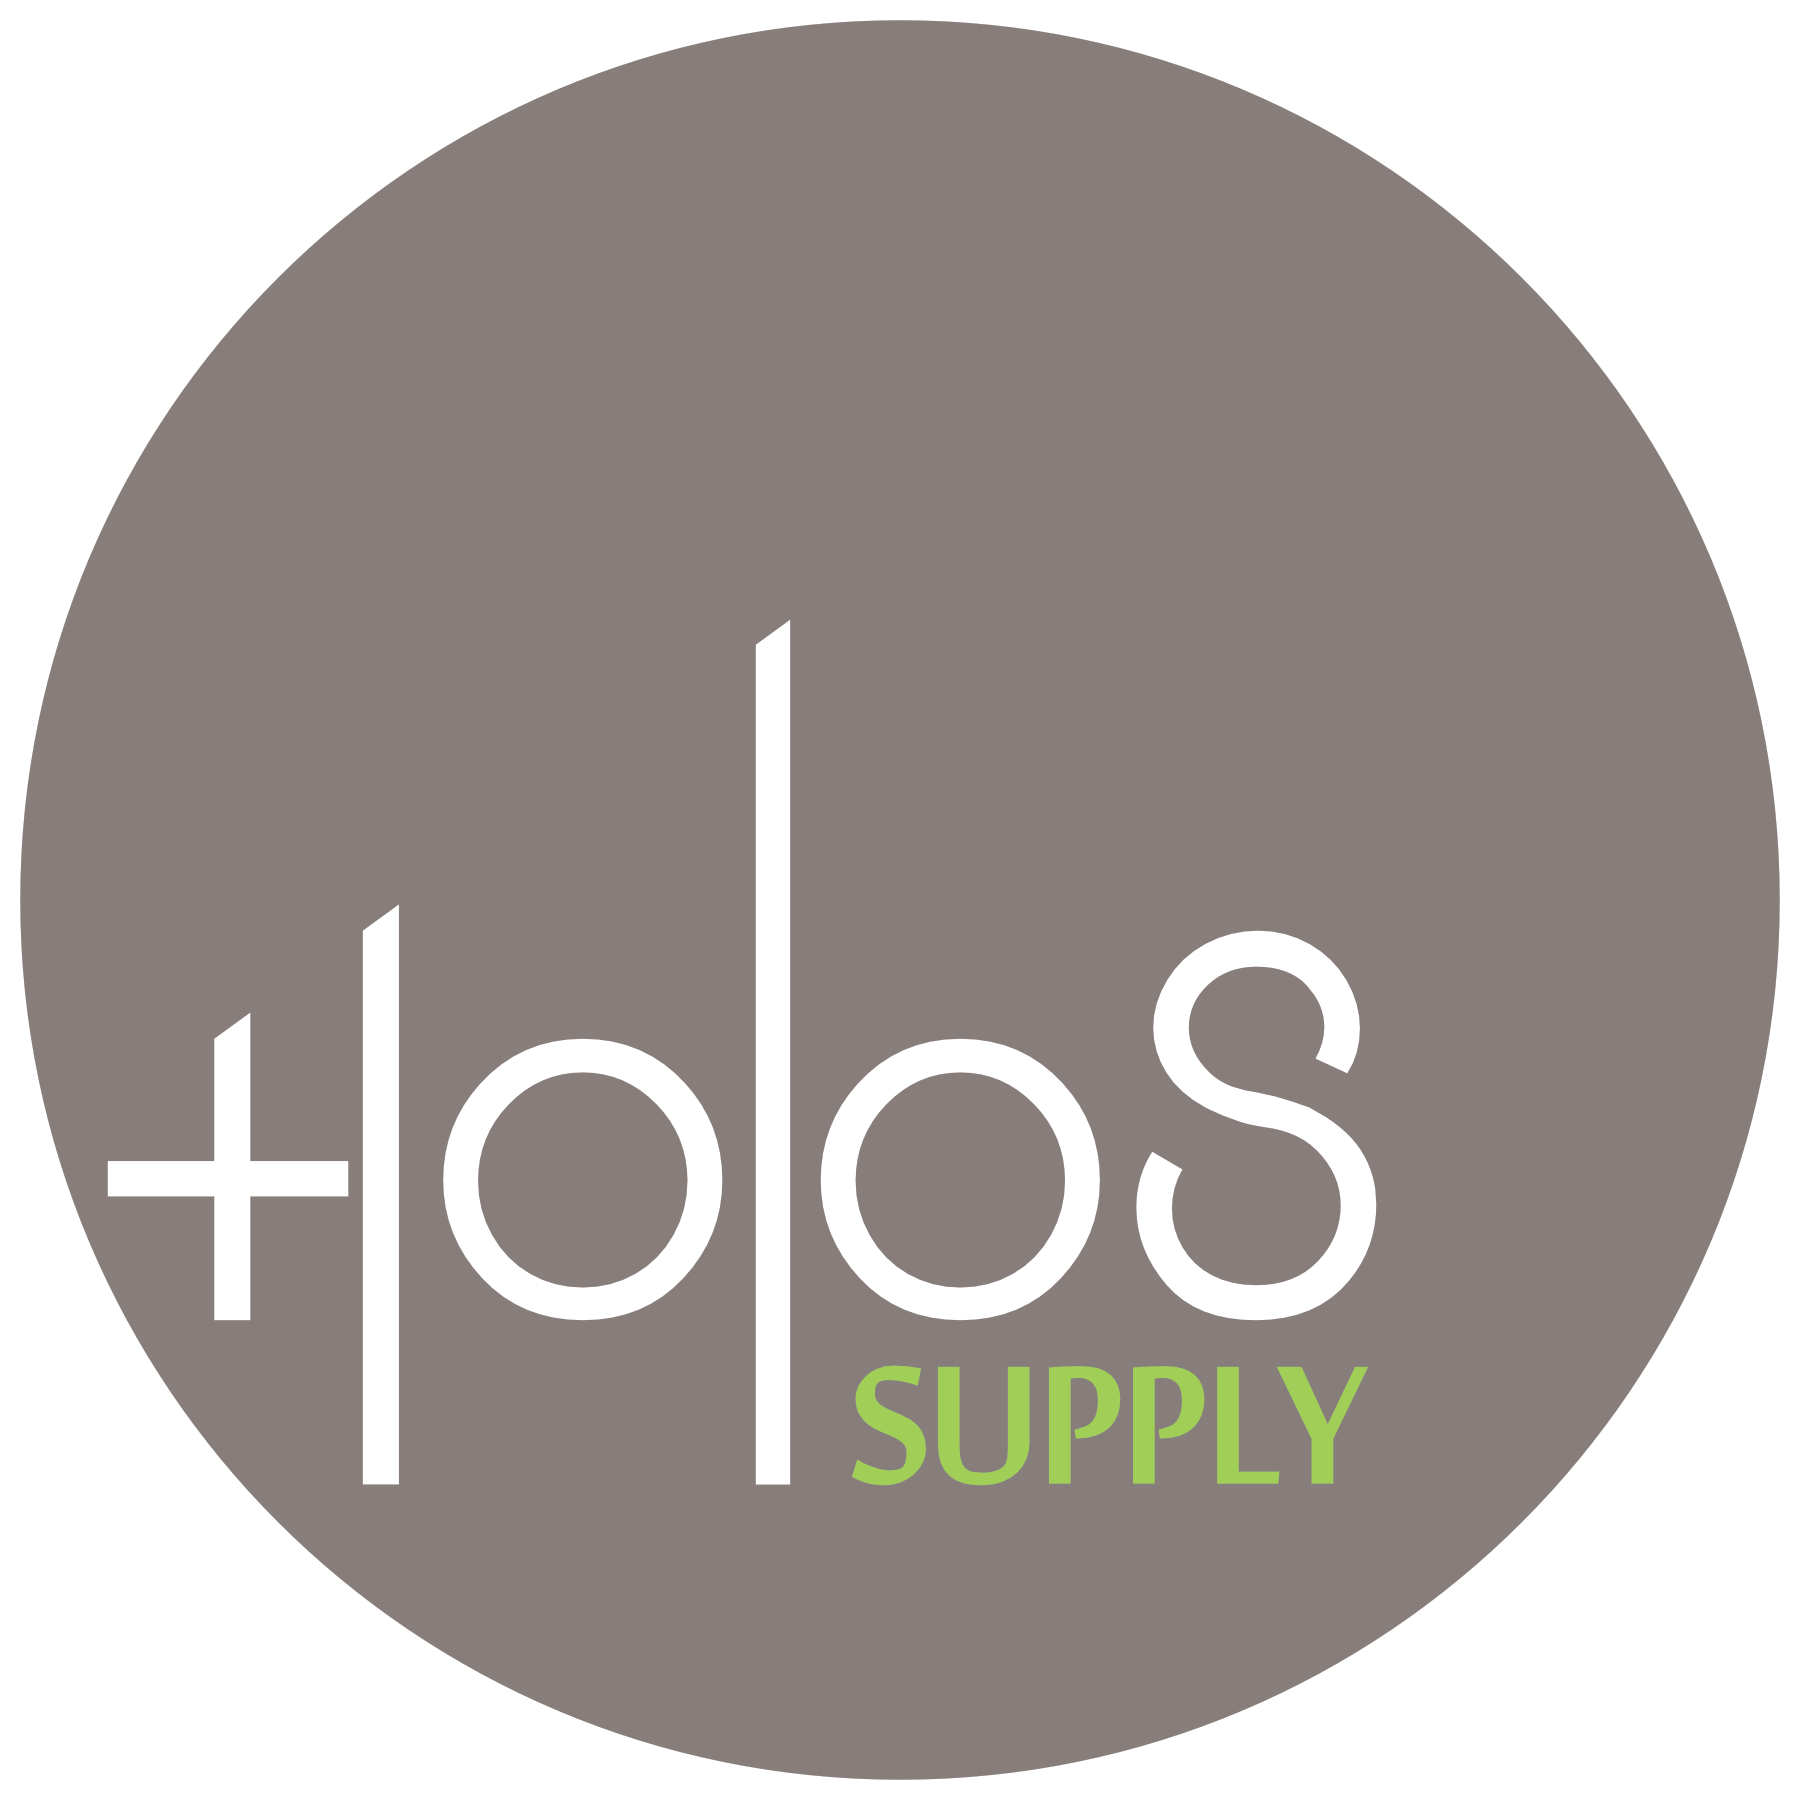 holos supply GmbH